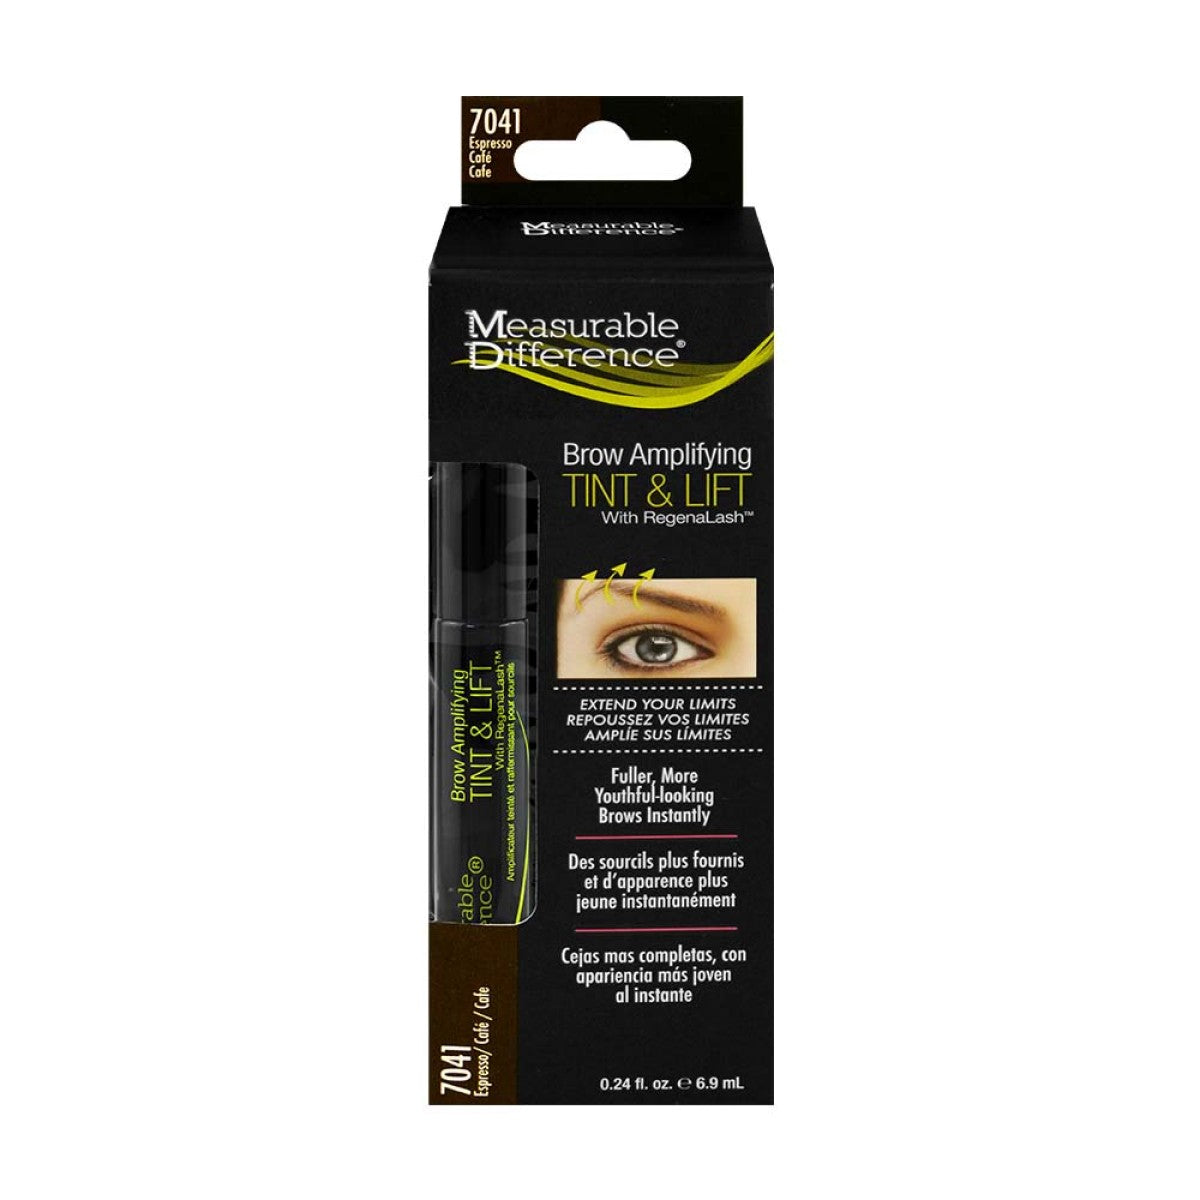 Brow Amplifying Tint & Lift With RegenaLash™ - Espresso